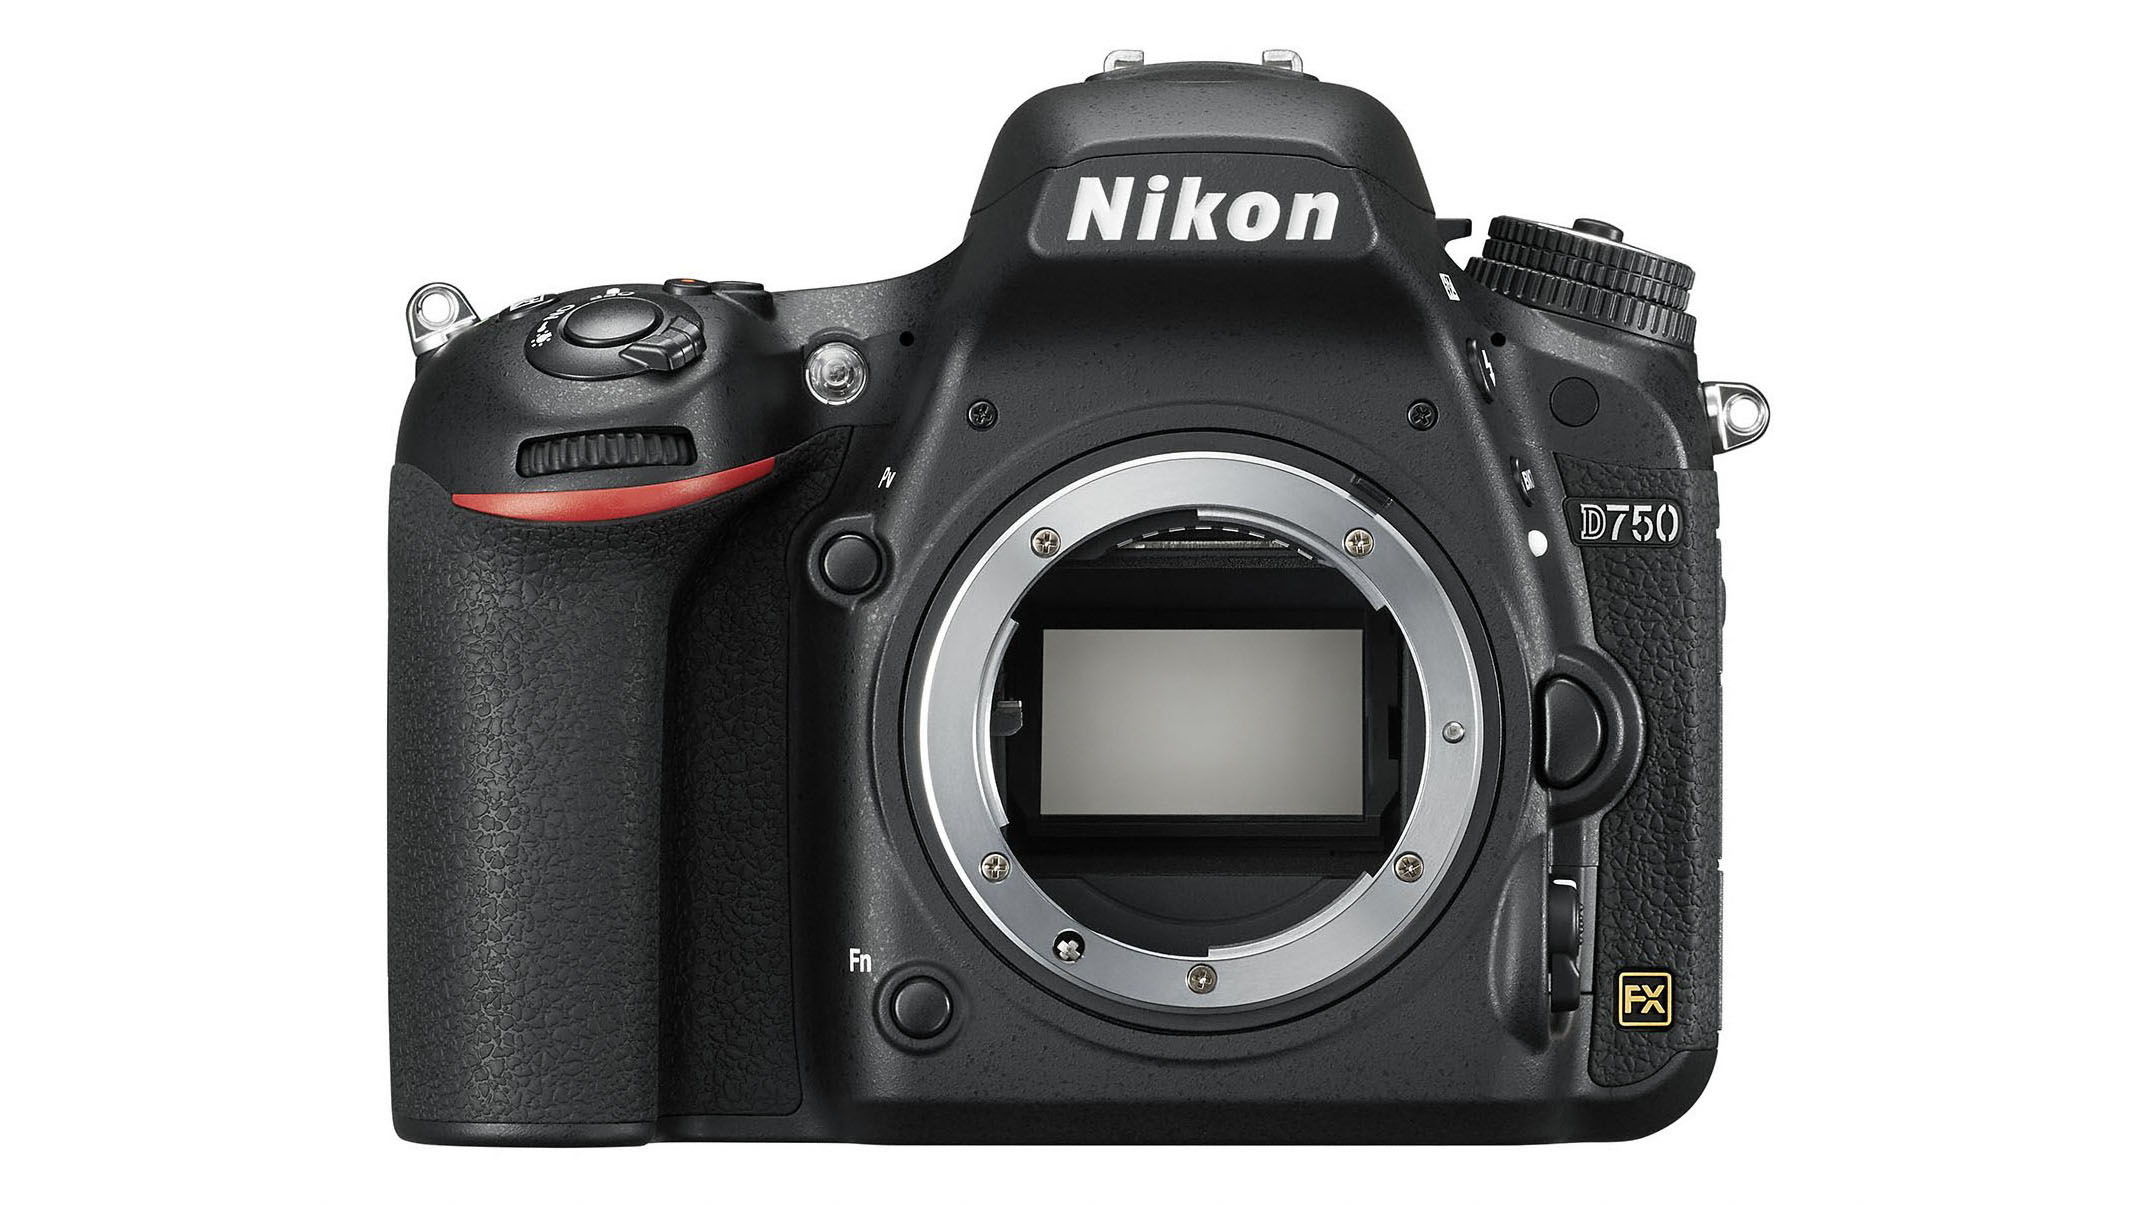 Nikon D760: huge hint reveals new camera set for 2019 launch | Digital Camera World